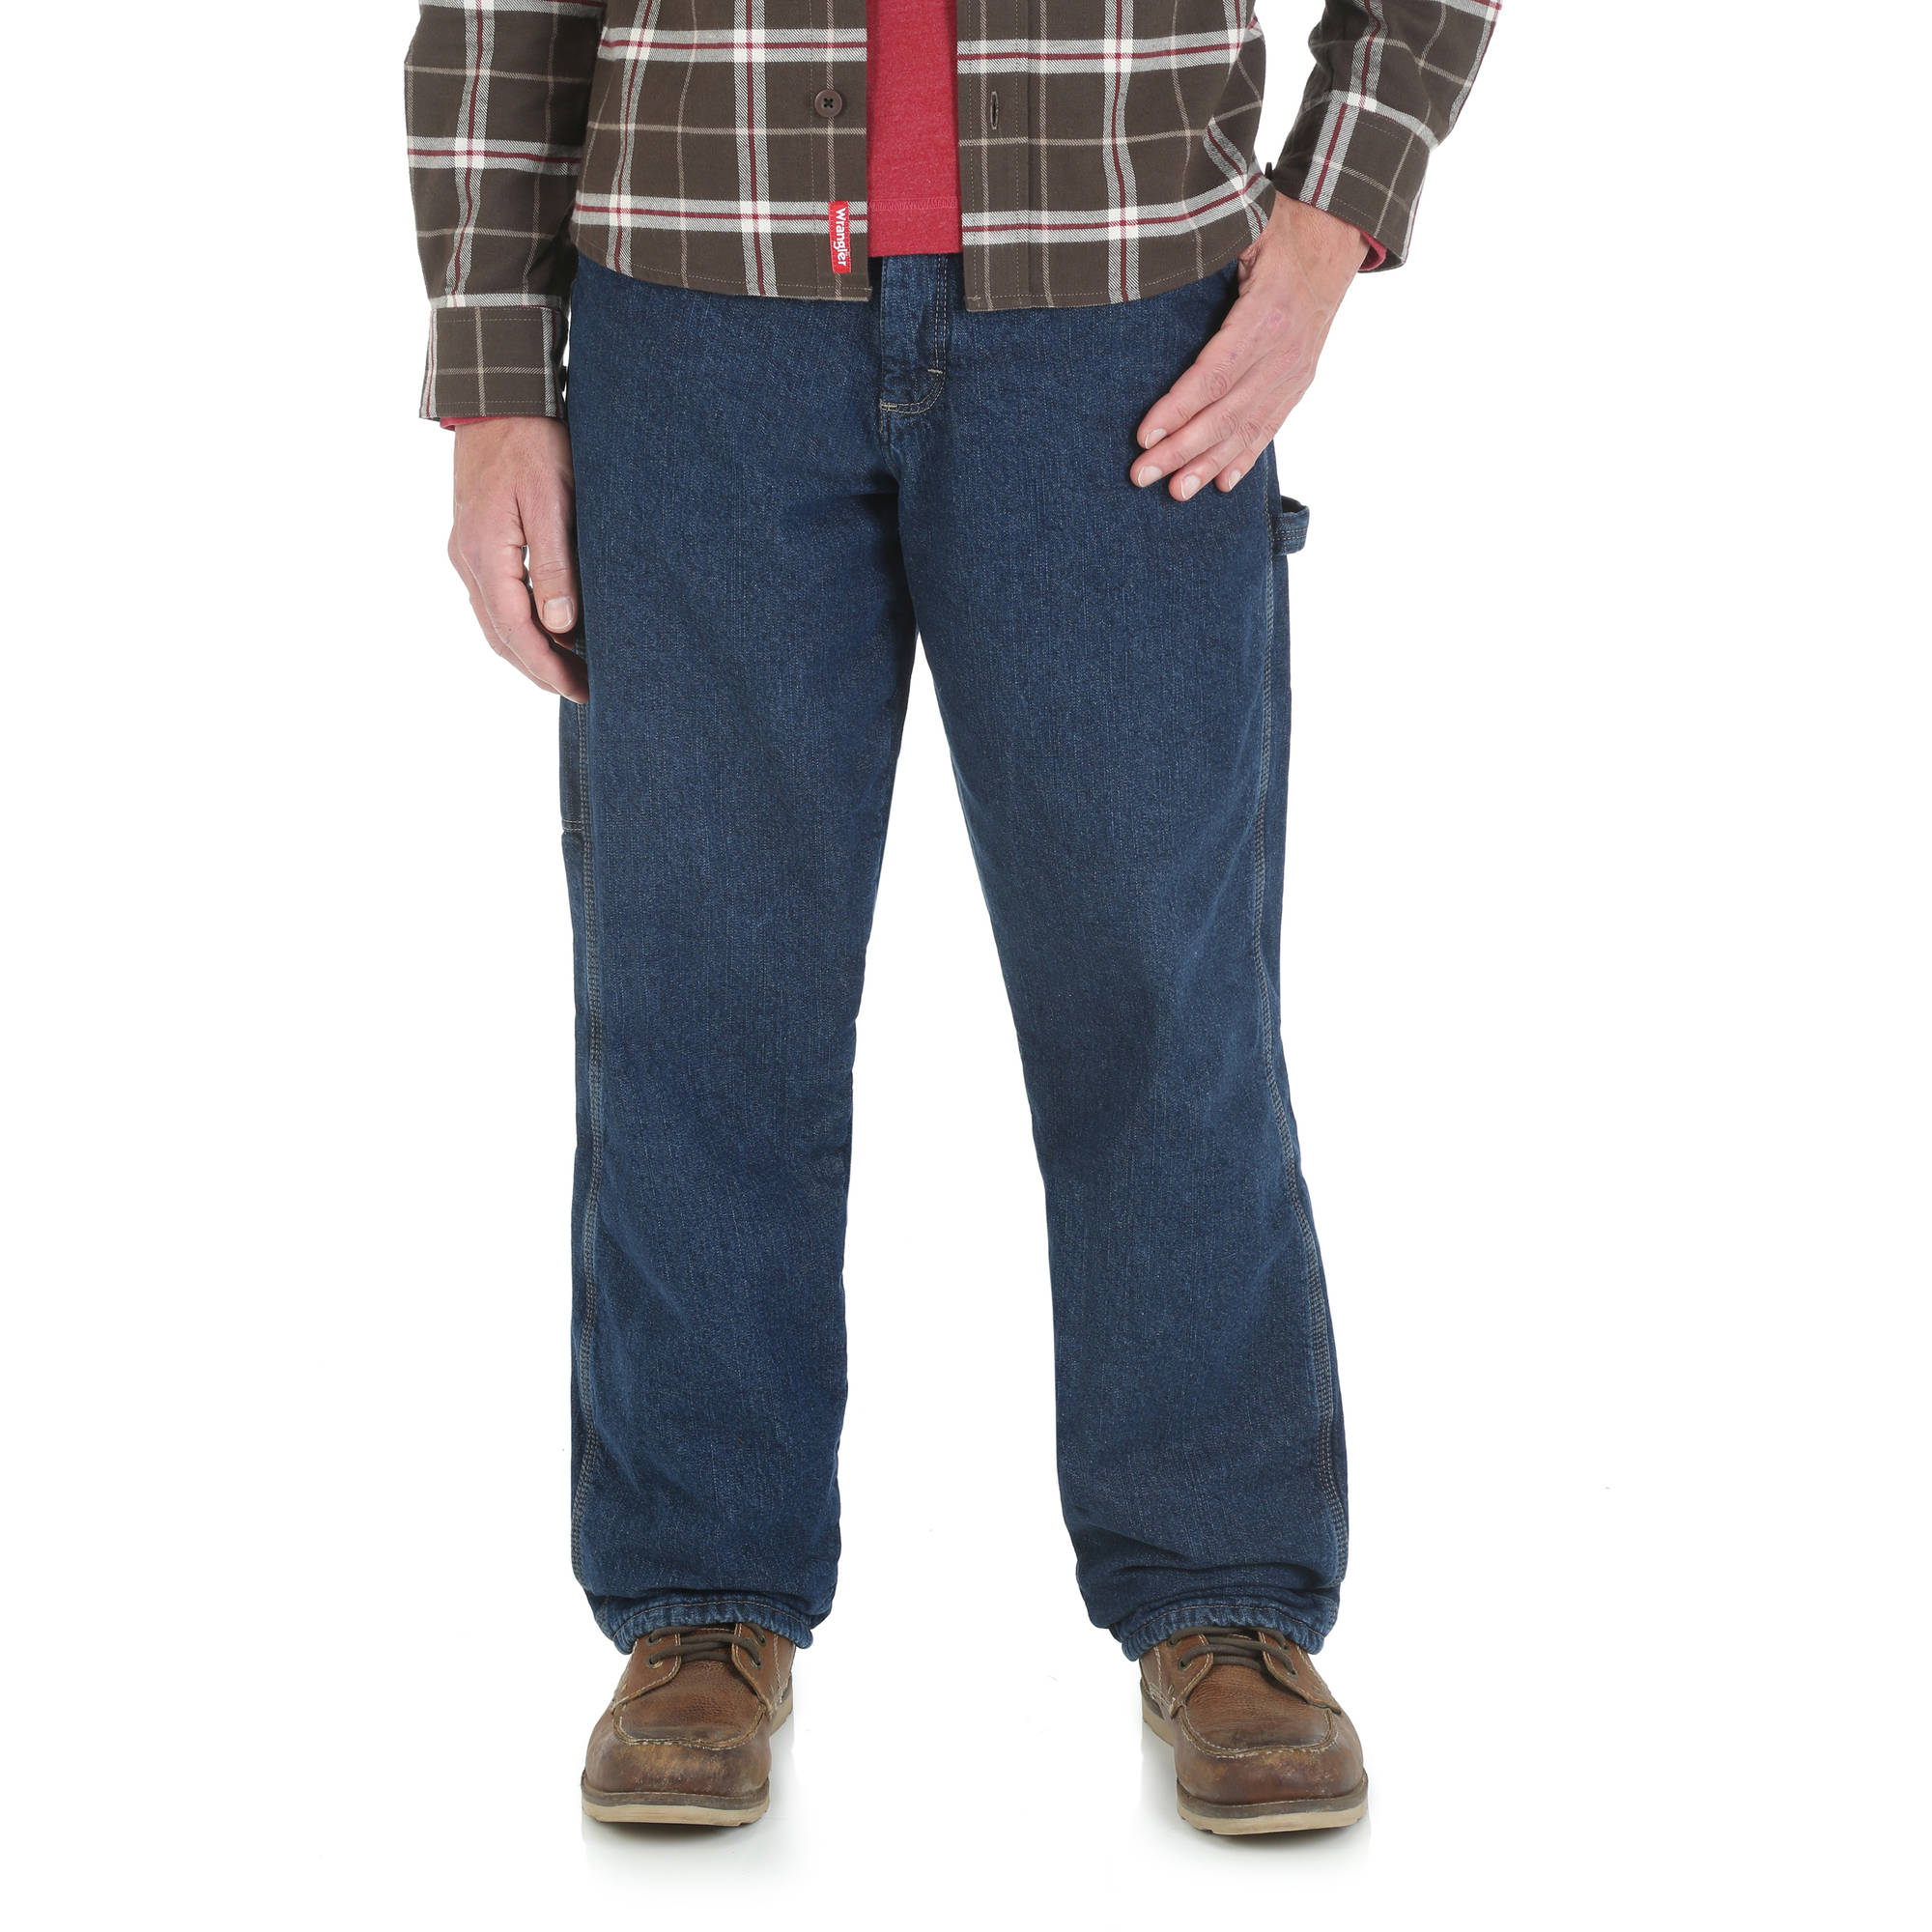 Wrangler Men's Fleece Lined Carpenter Jean - Walmart.com